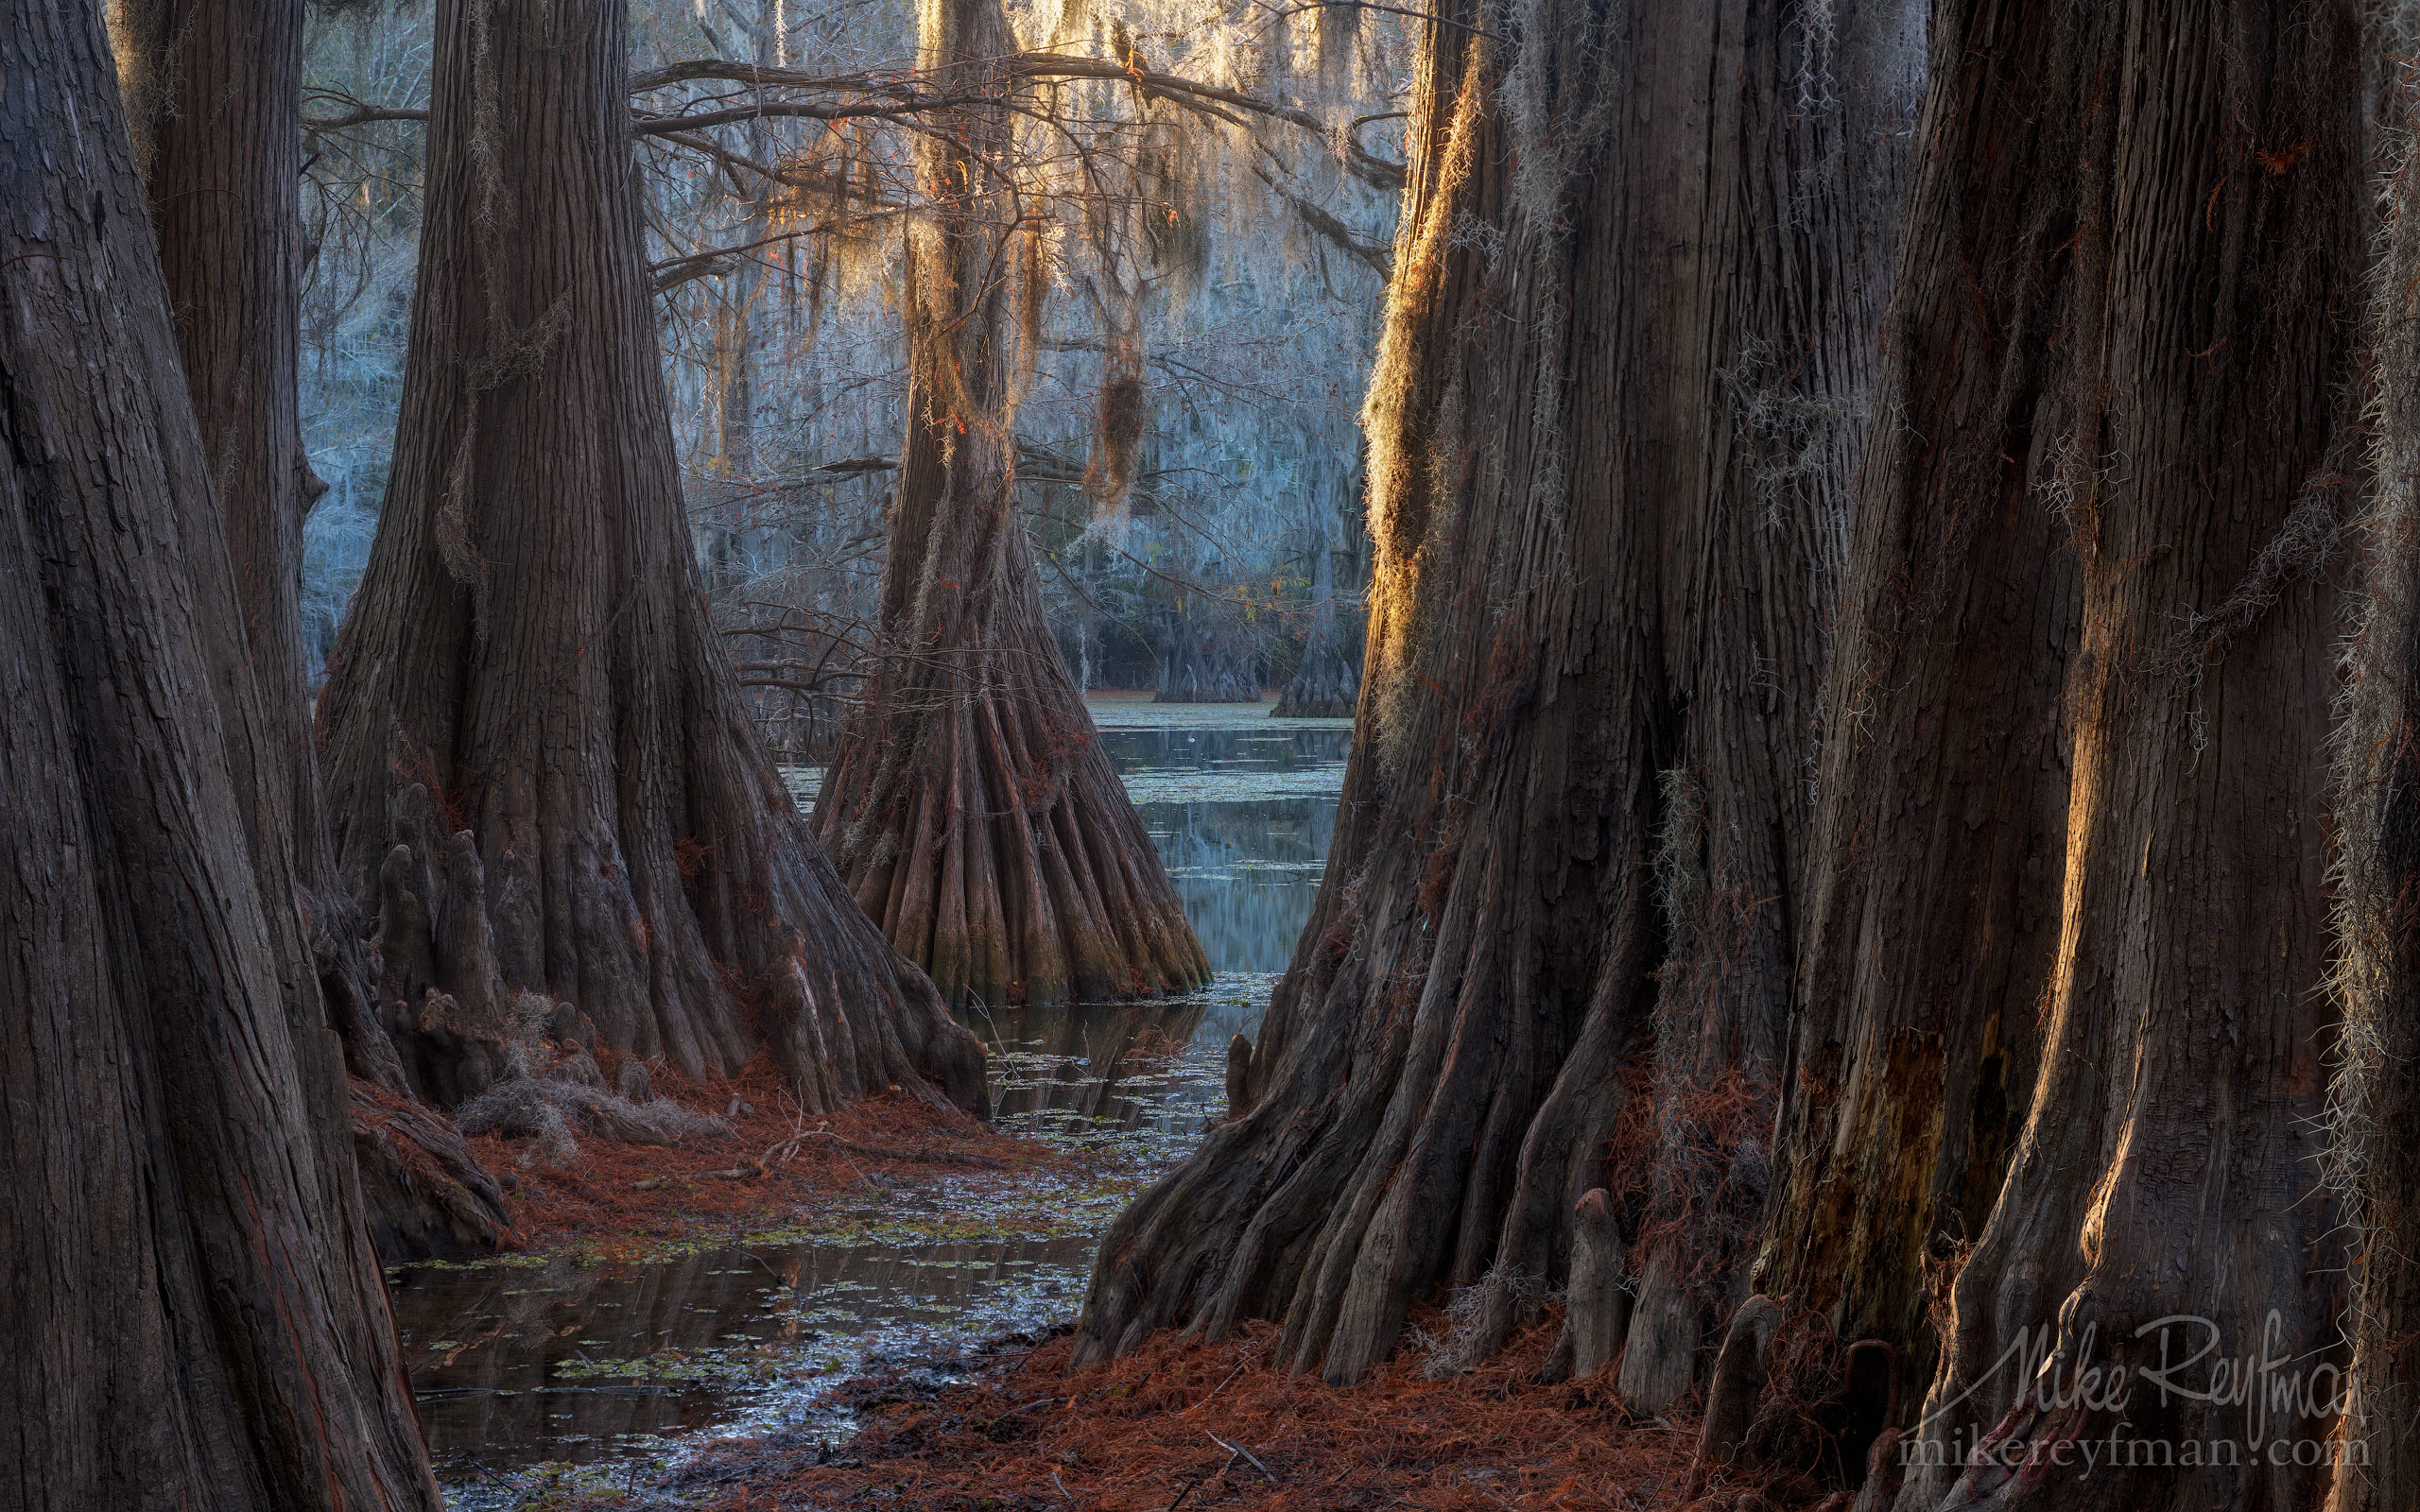 Bald Cypress trees in the swamp. Caddo Lake, Texas, US 006_LT1_50A2791.jpg - Bold Cypress and Tupelo Trees in the swamps of Atchafalaya River Basin. Caddo, Martin and Fousse Lakes. Texas/Louisiana, USA. - Mike Reyfman Photography